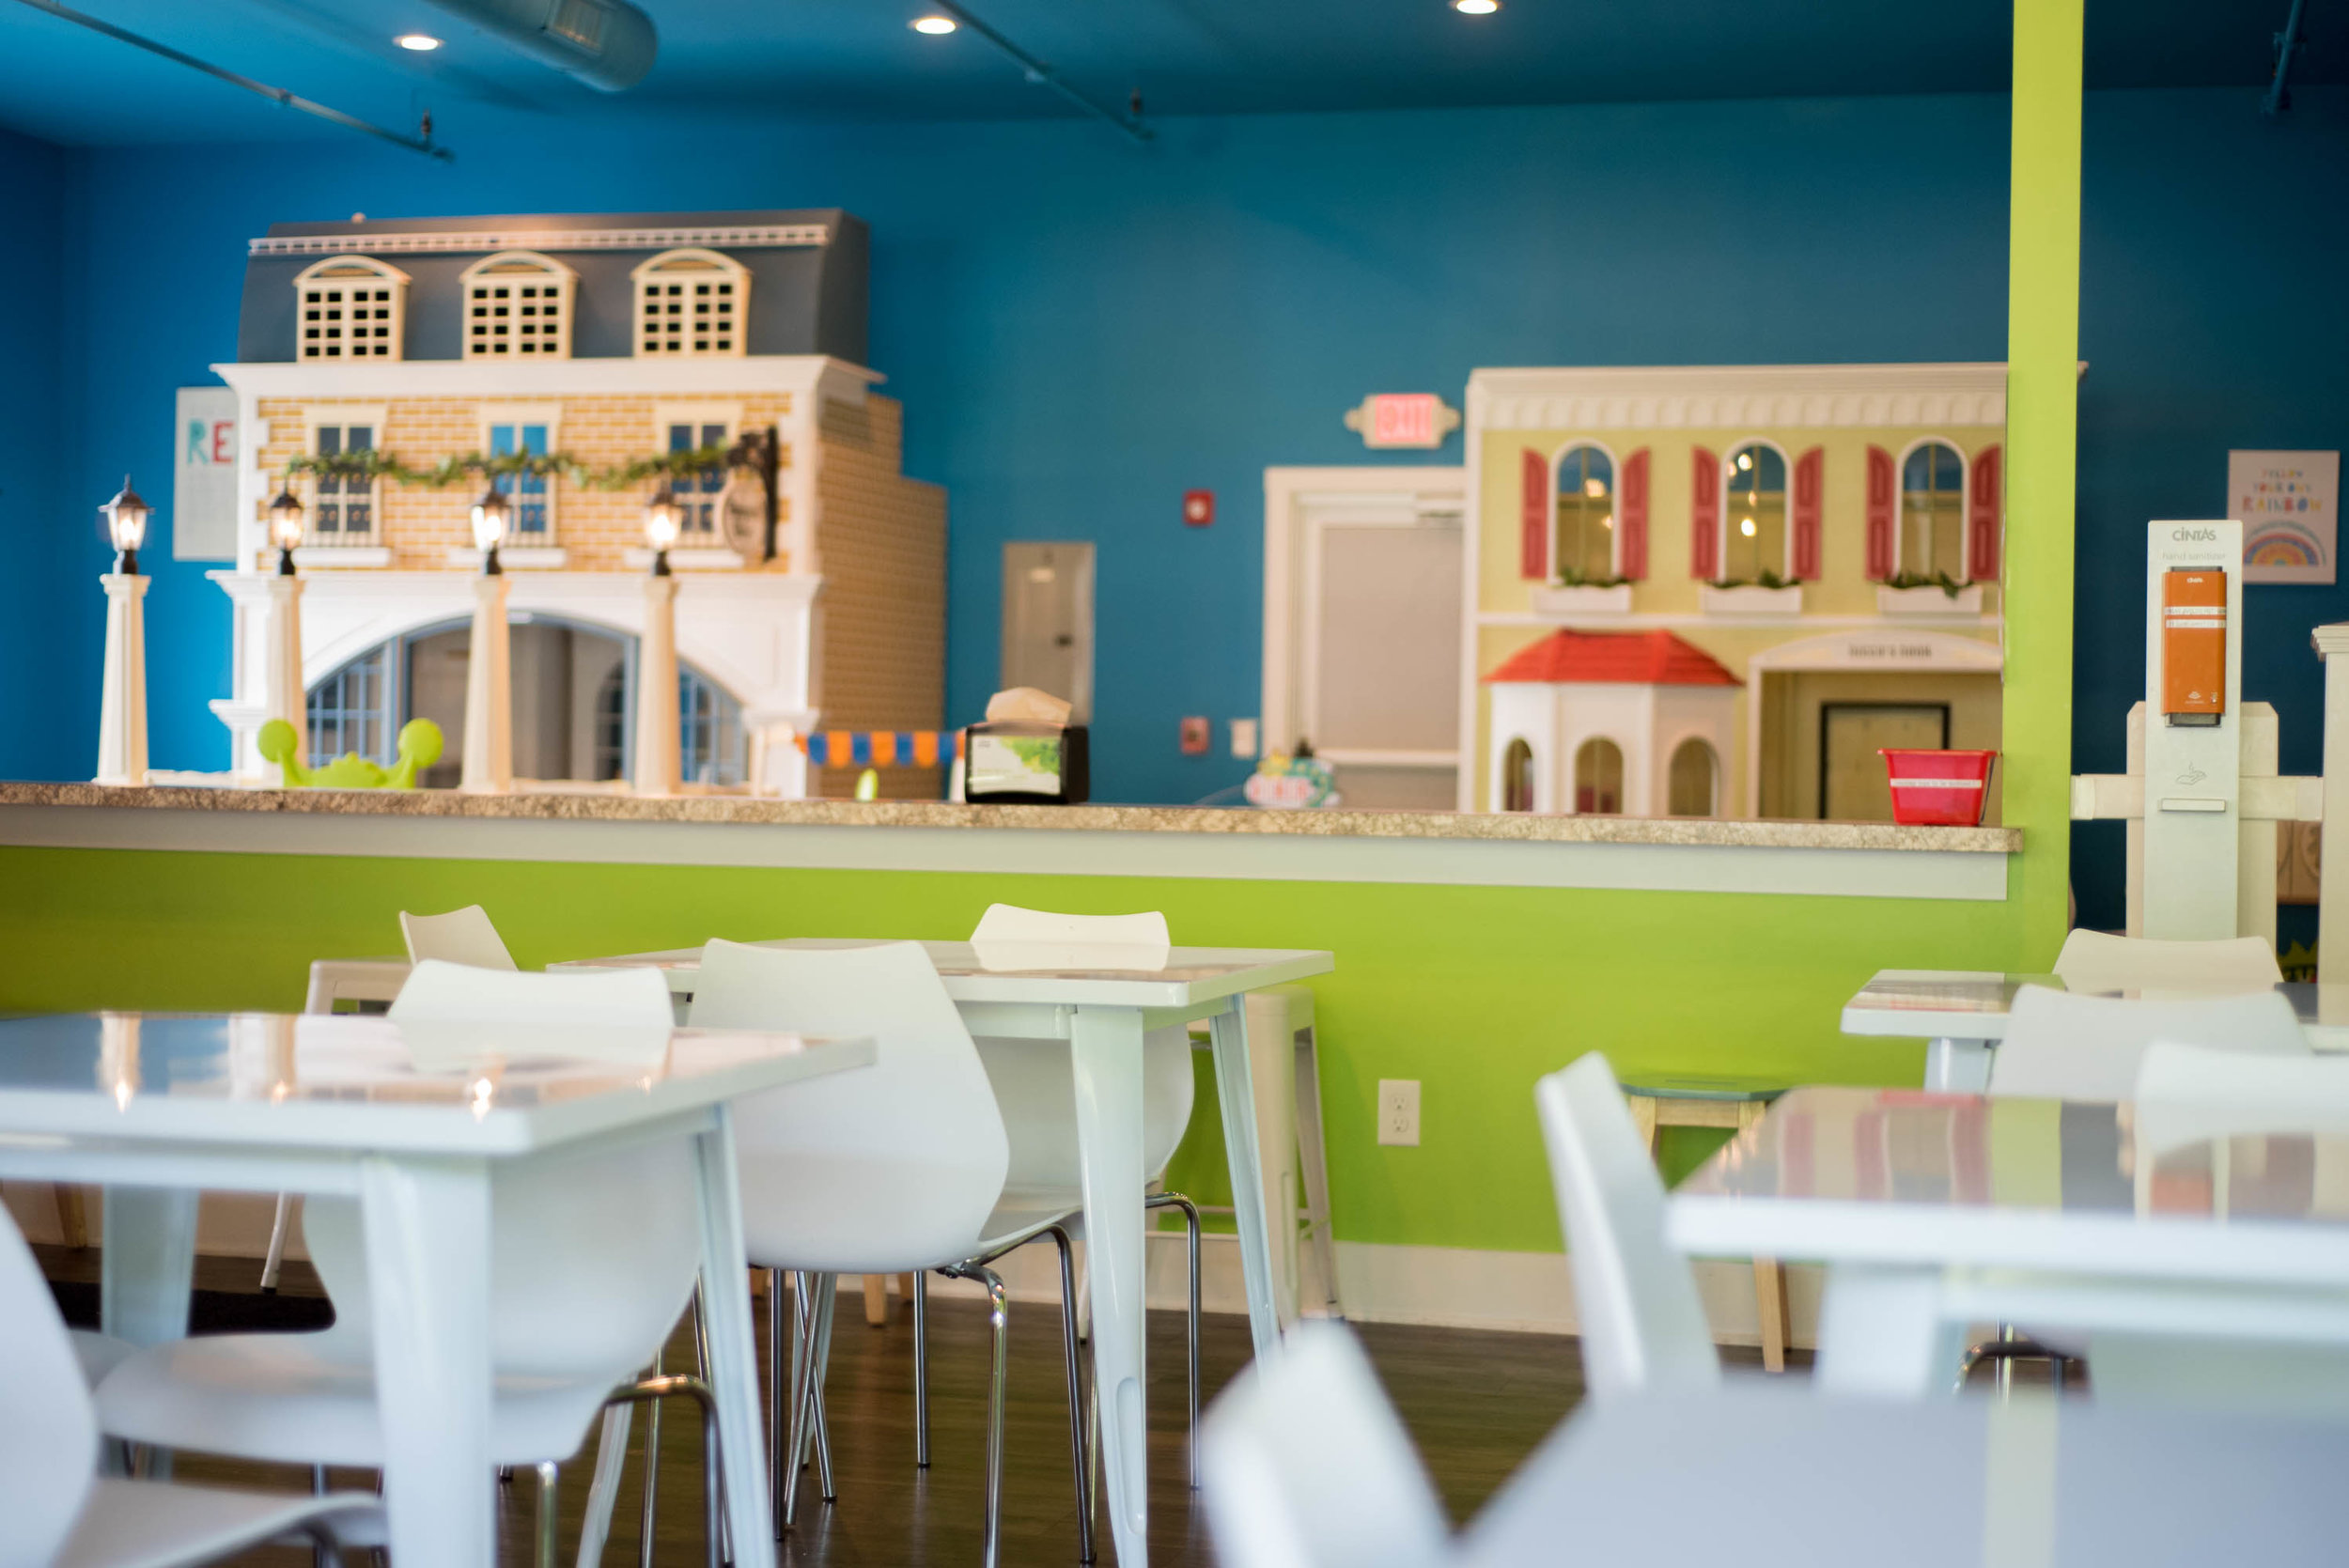 indoor-play-area-play-cafe-play-cafe-academy-1